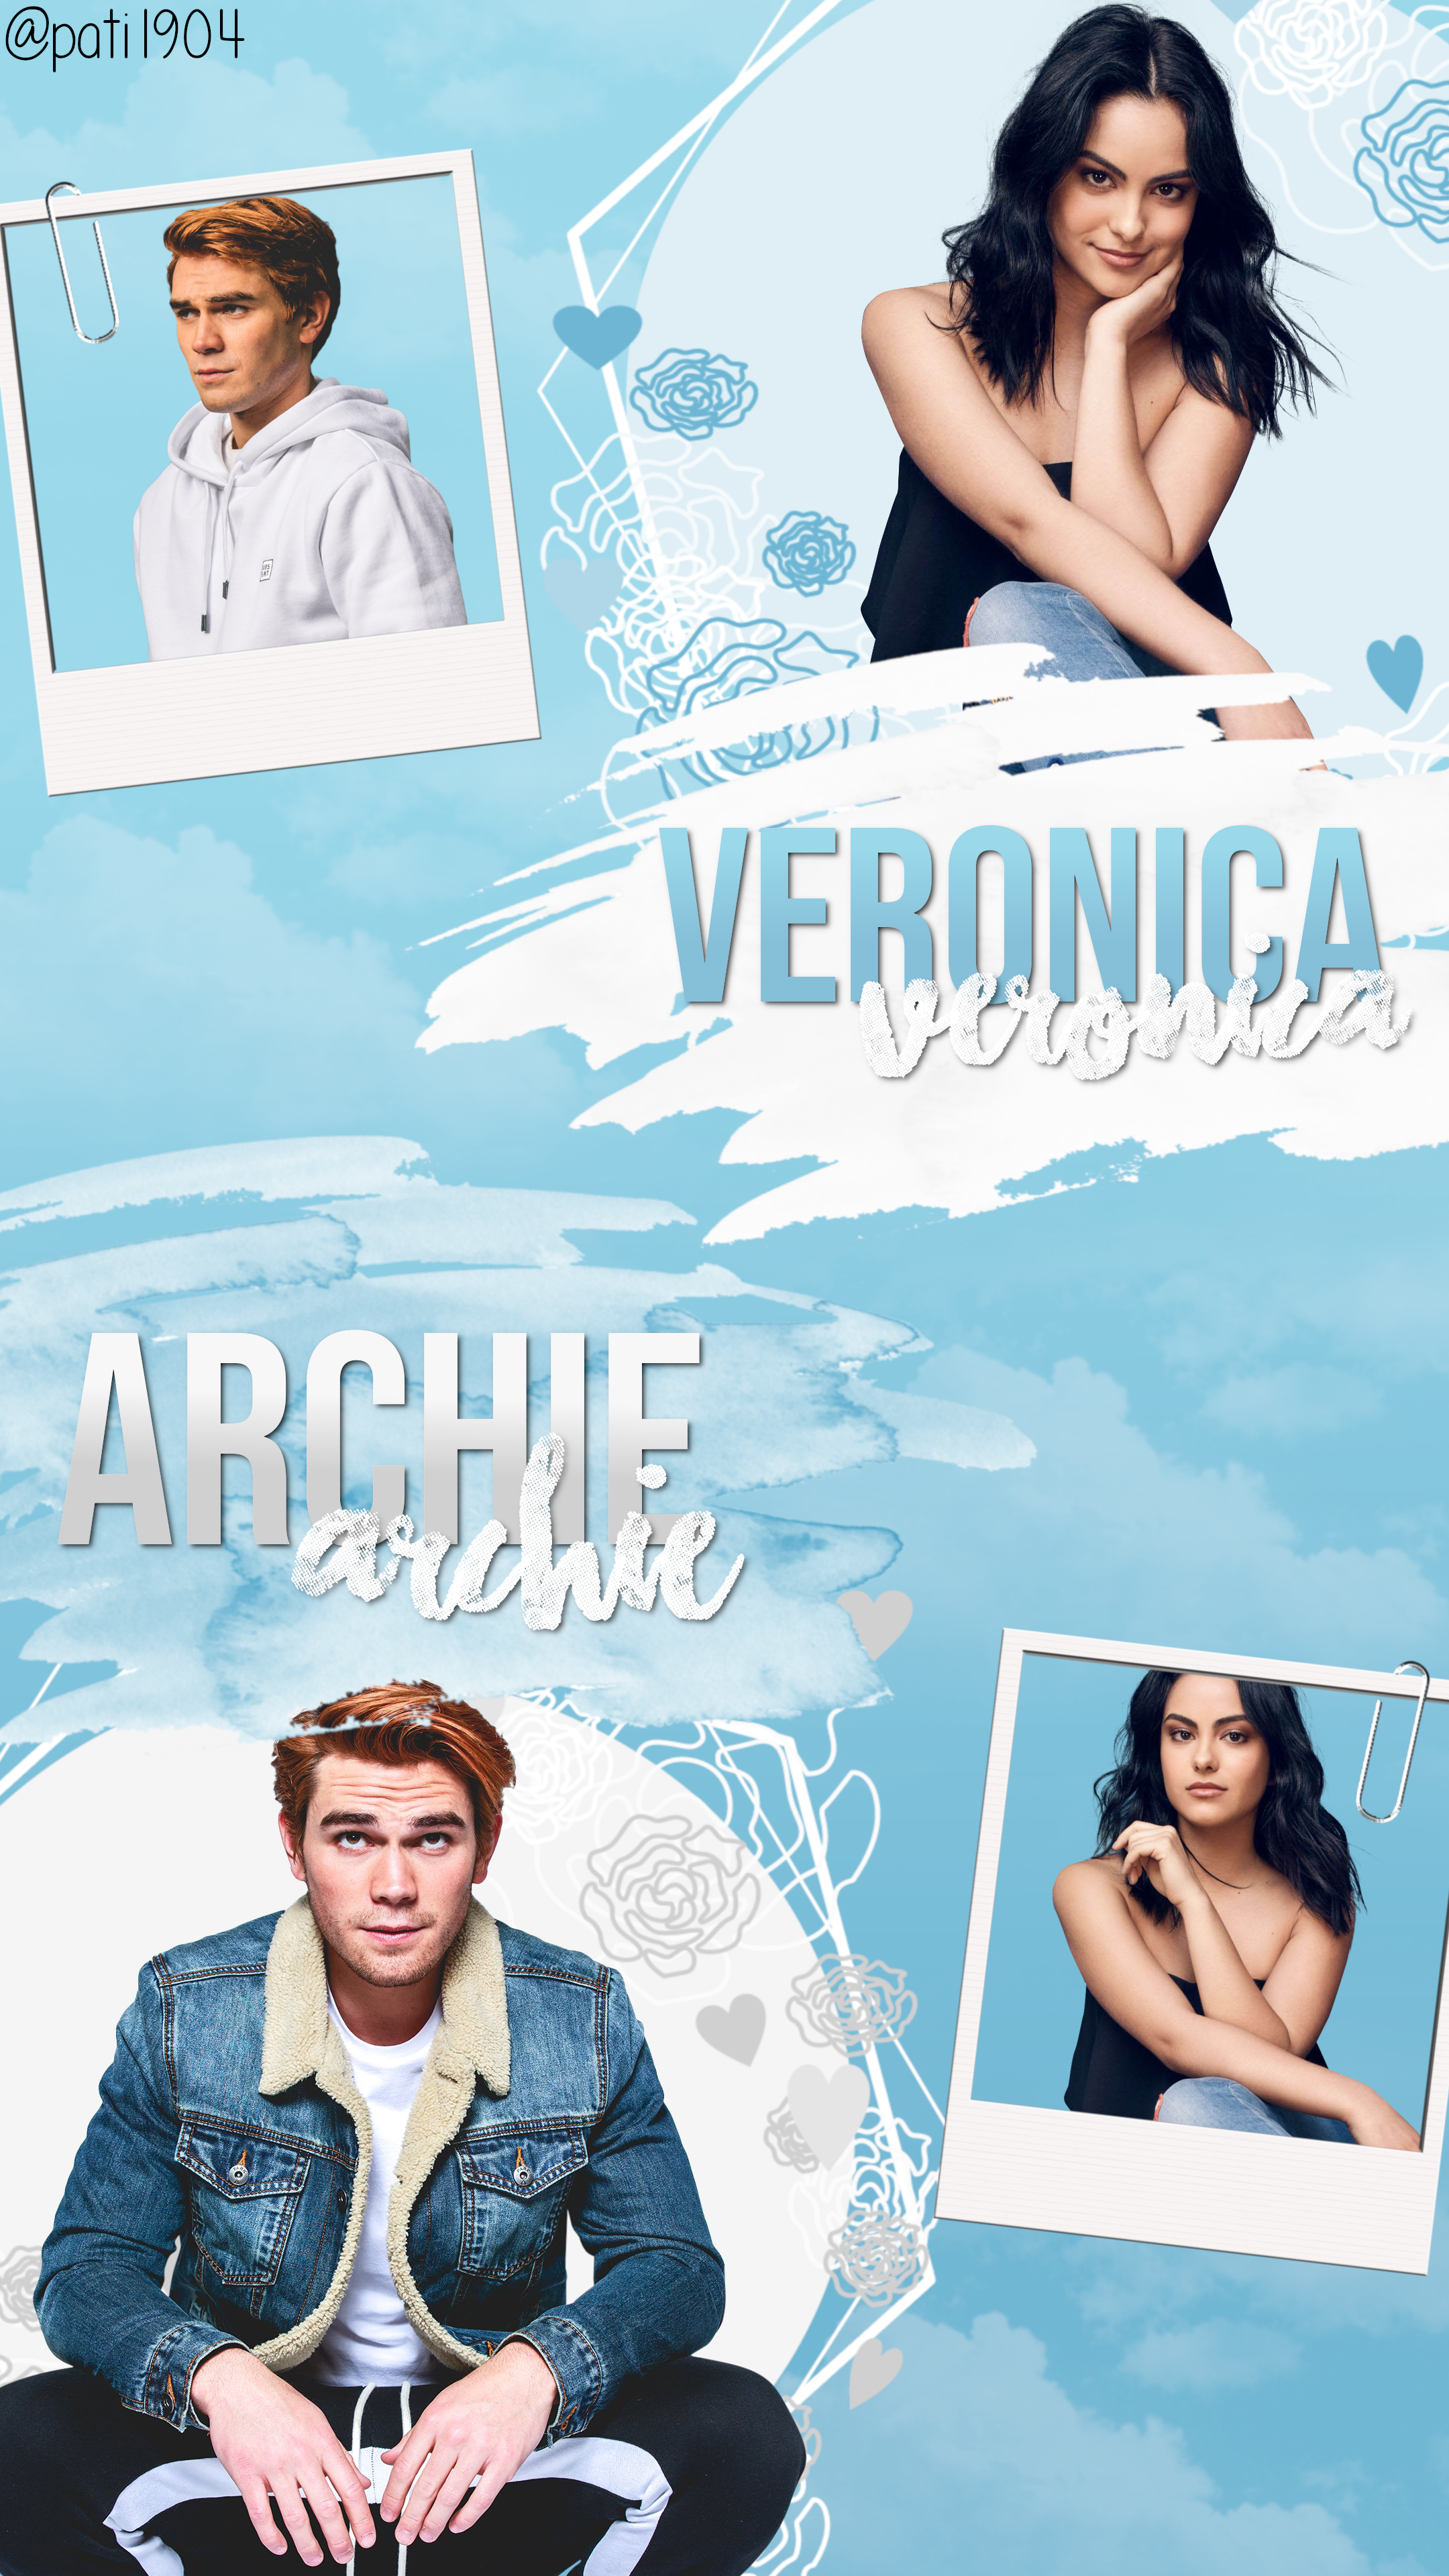 Wallpaper Veronica And Archie Wallpaper Veronica Archie Riverdale Varchie Riverdale Veronica Riverdale Archie Riverdale Aesthetic